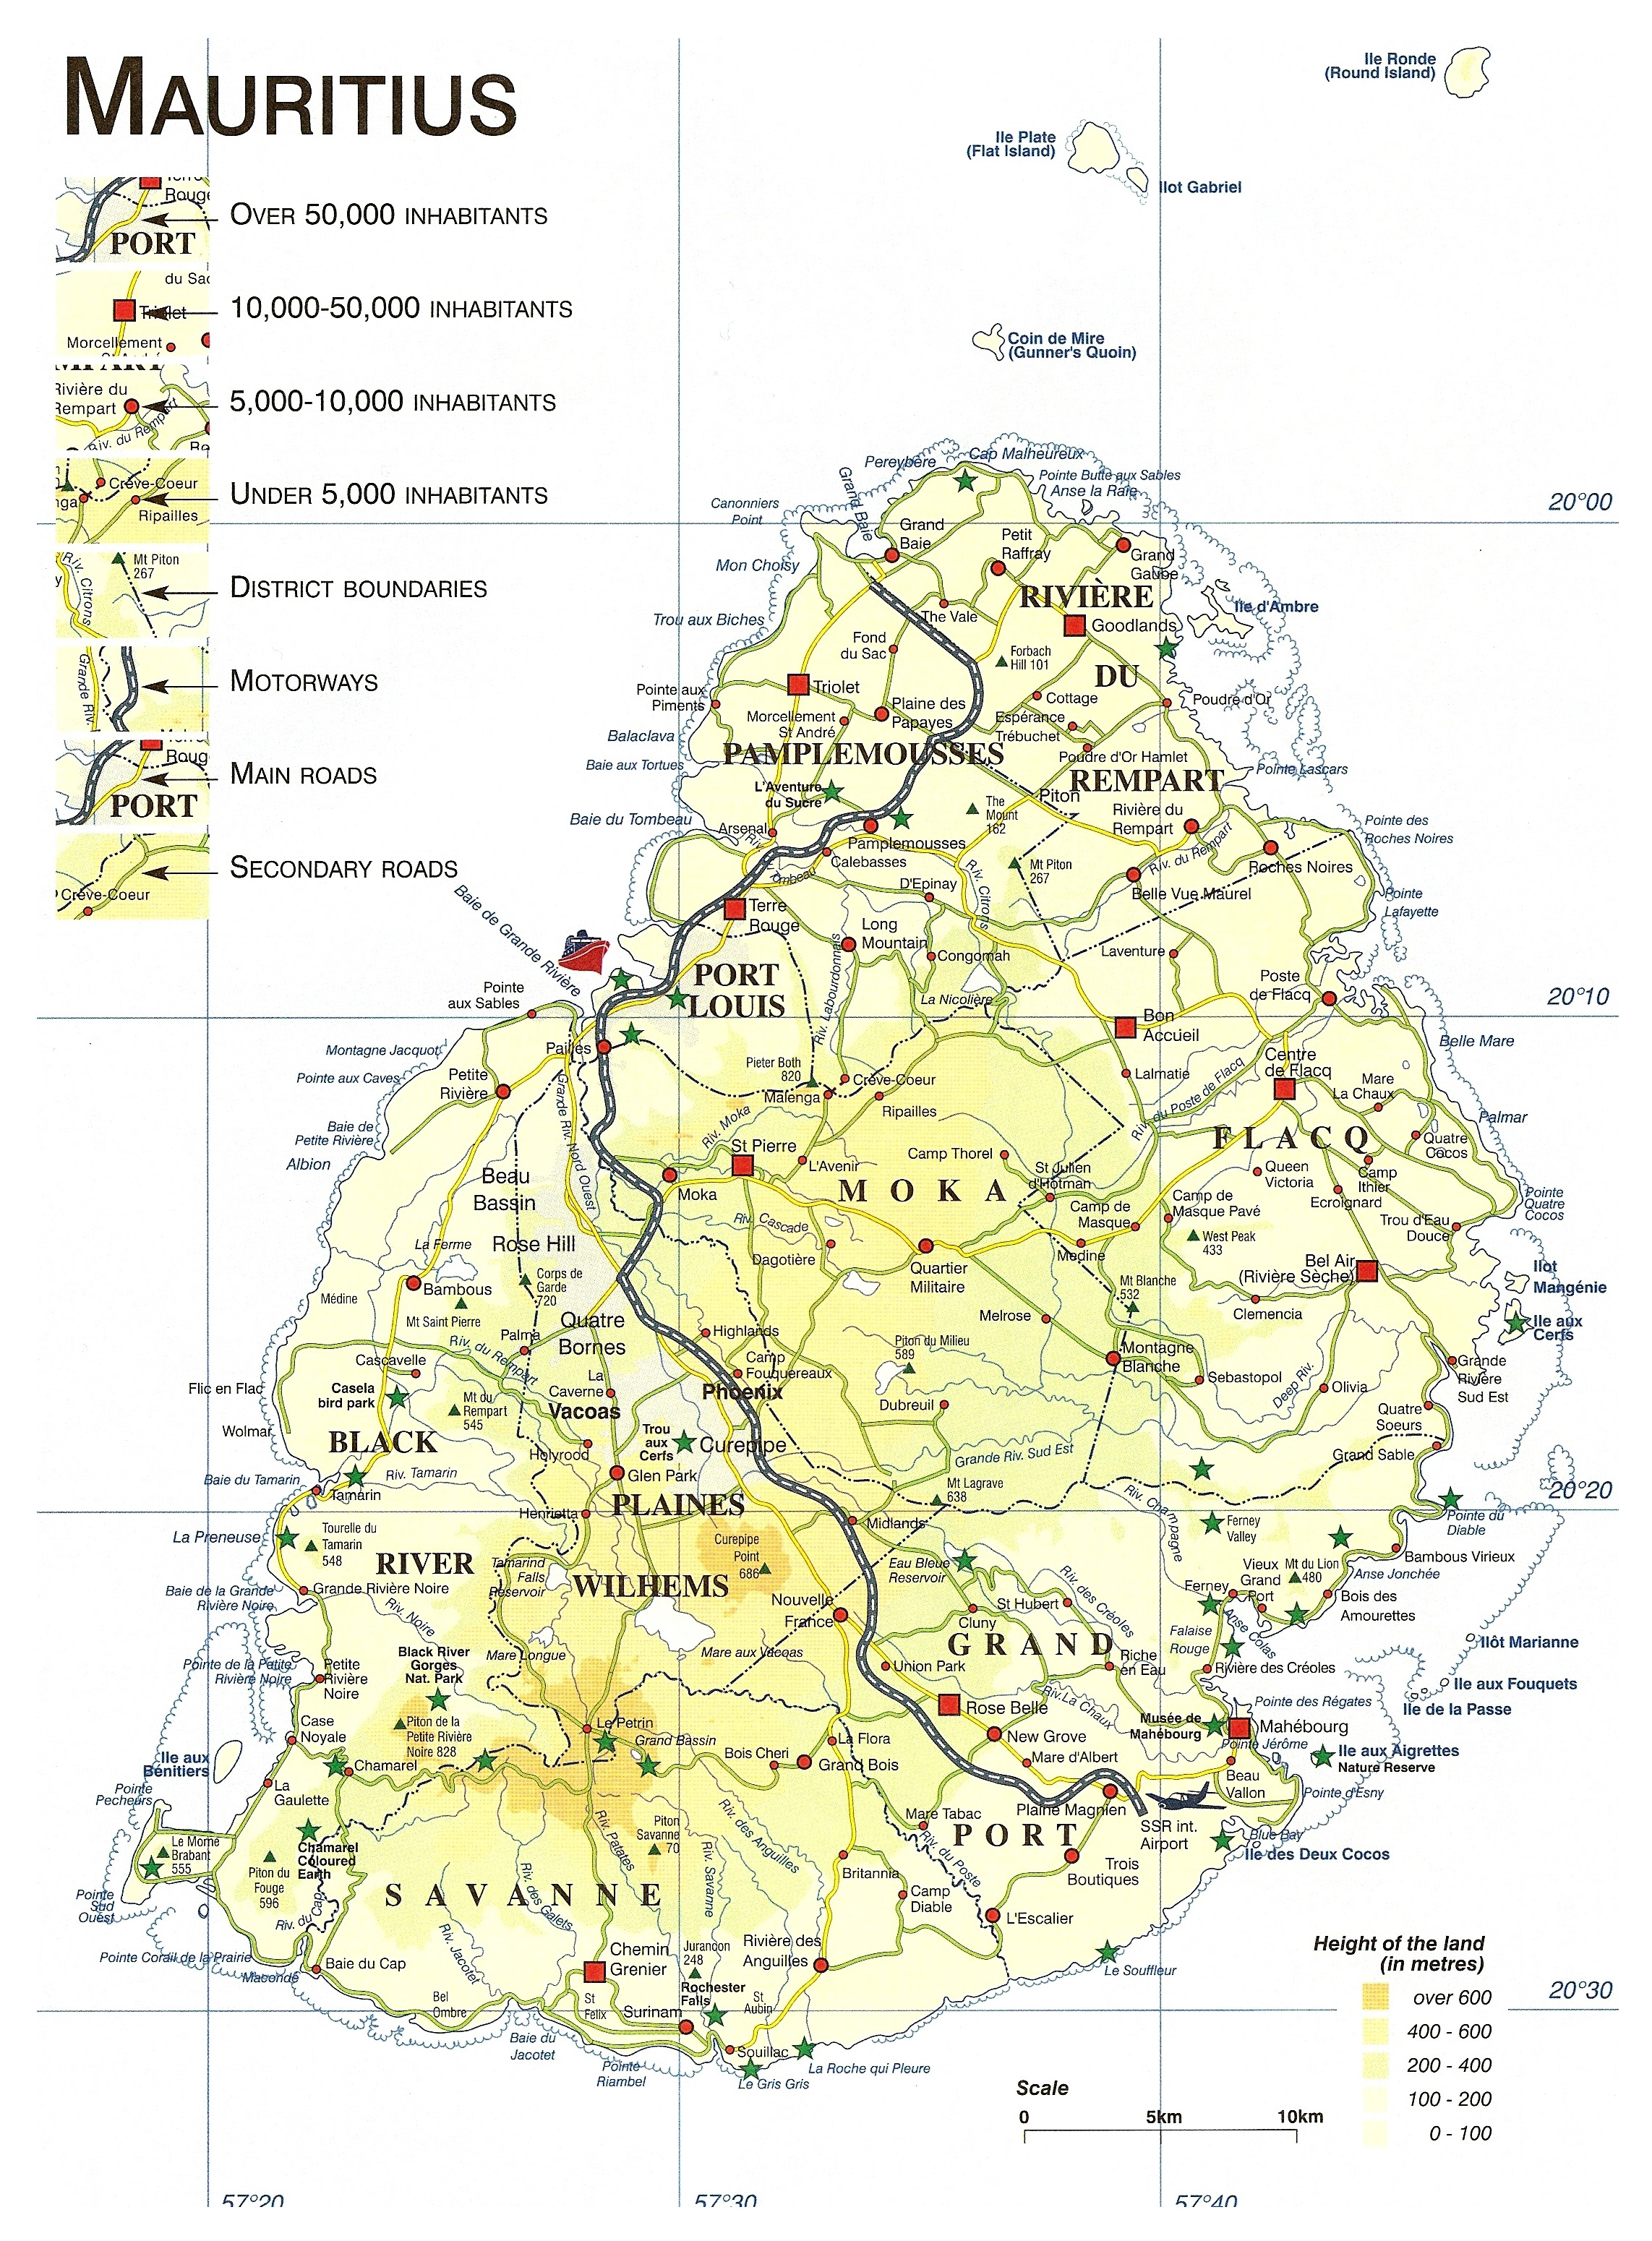 Large Detailed Elevation Map Of Mauritius With Roads Cities And - Detailed map of mauritius